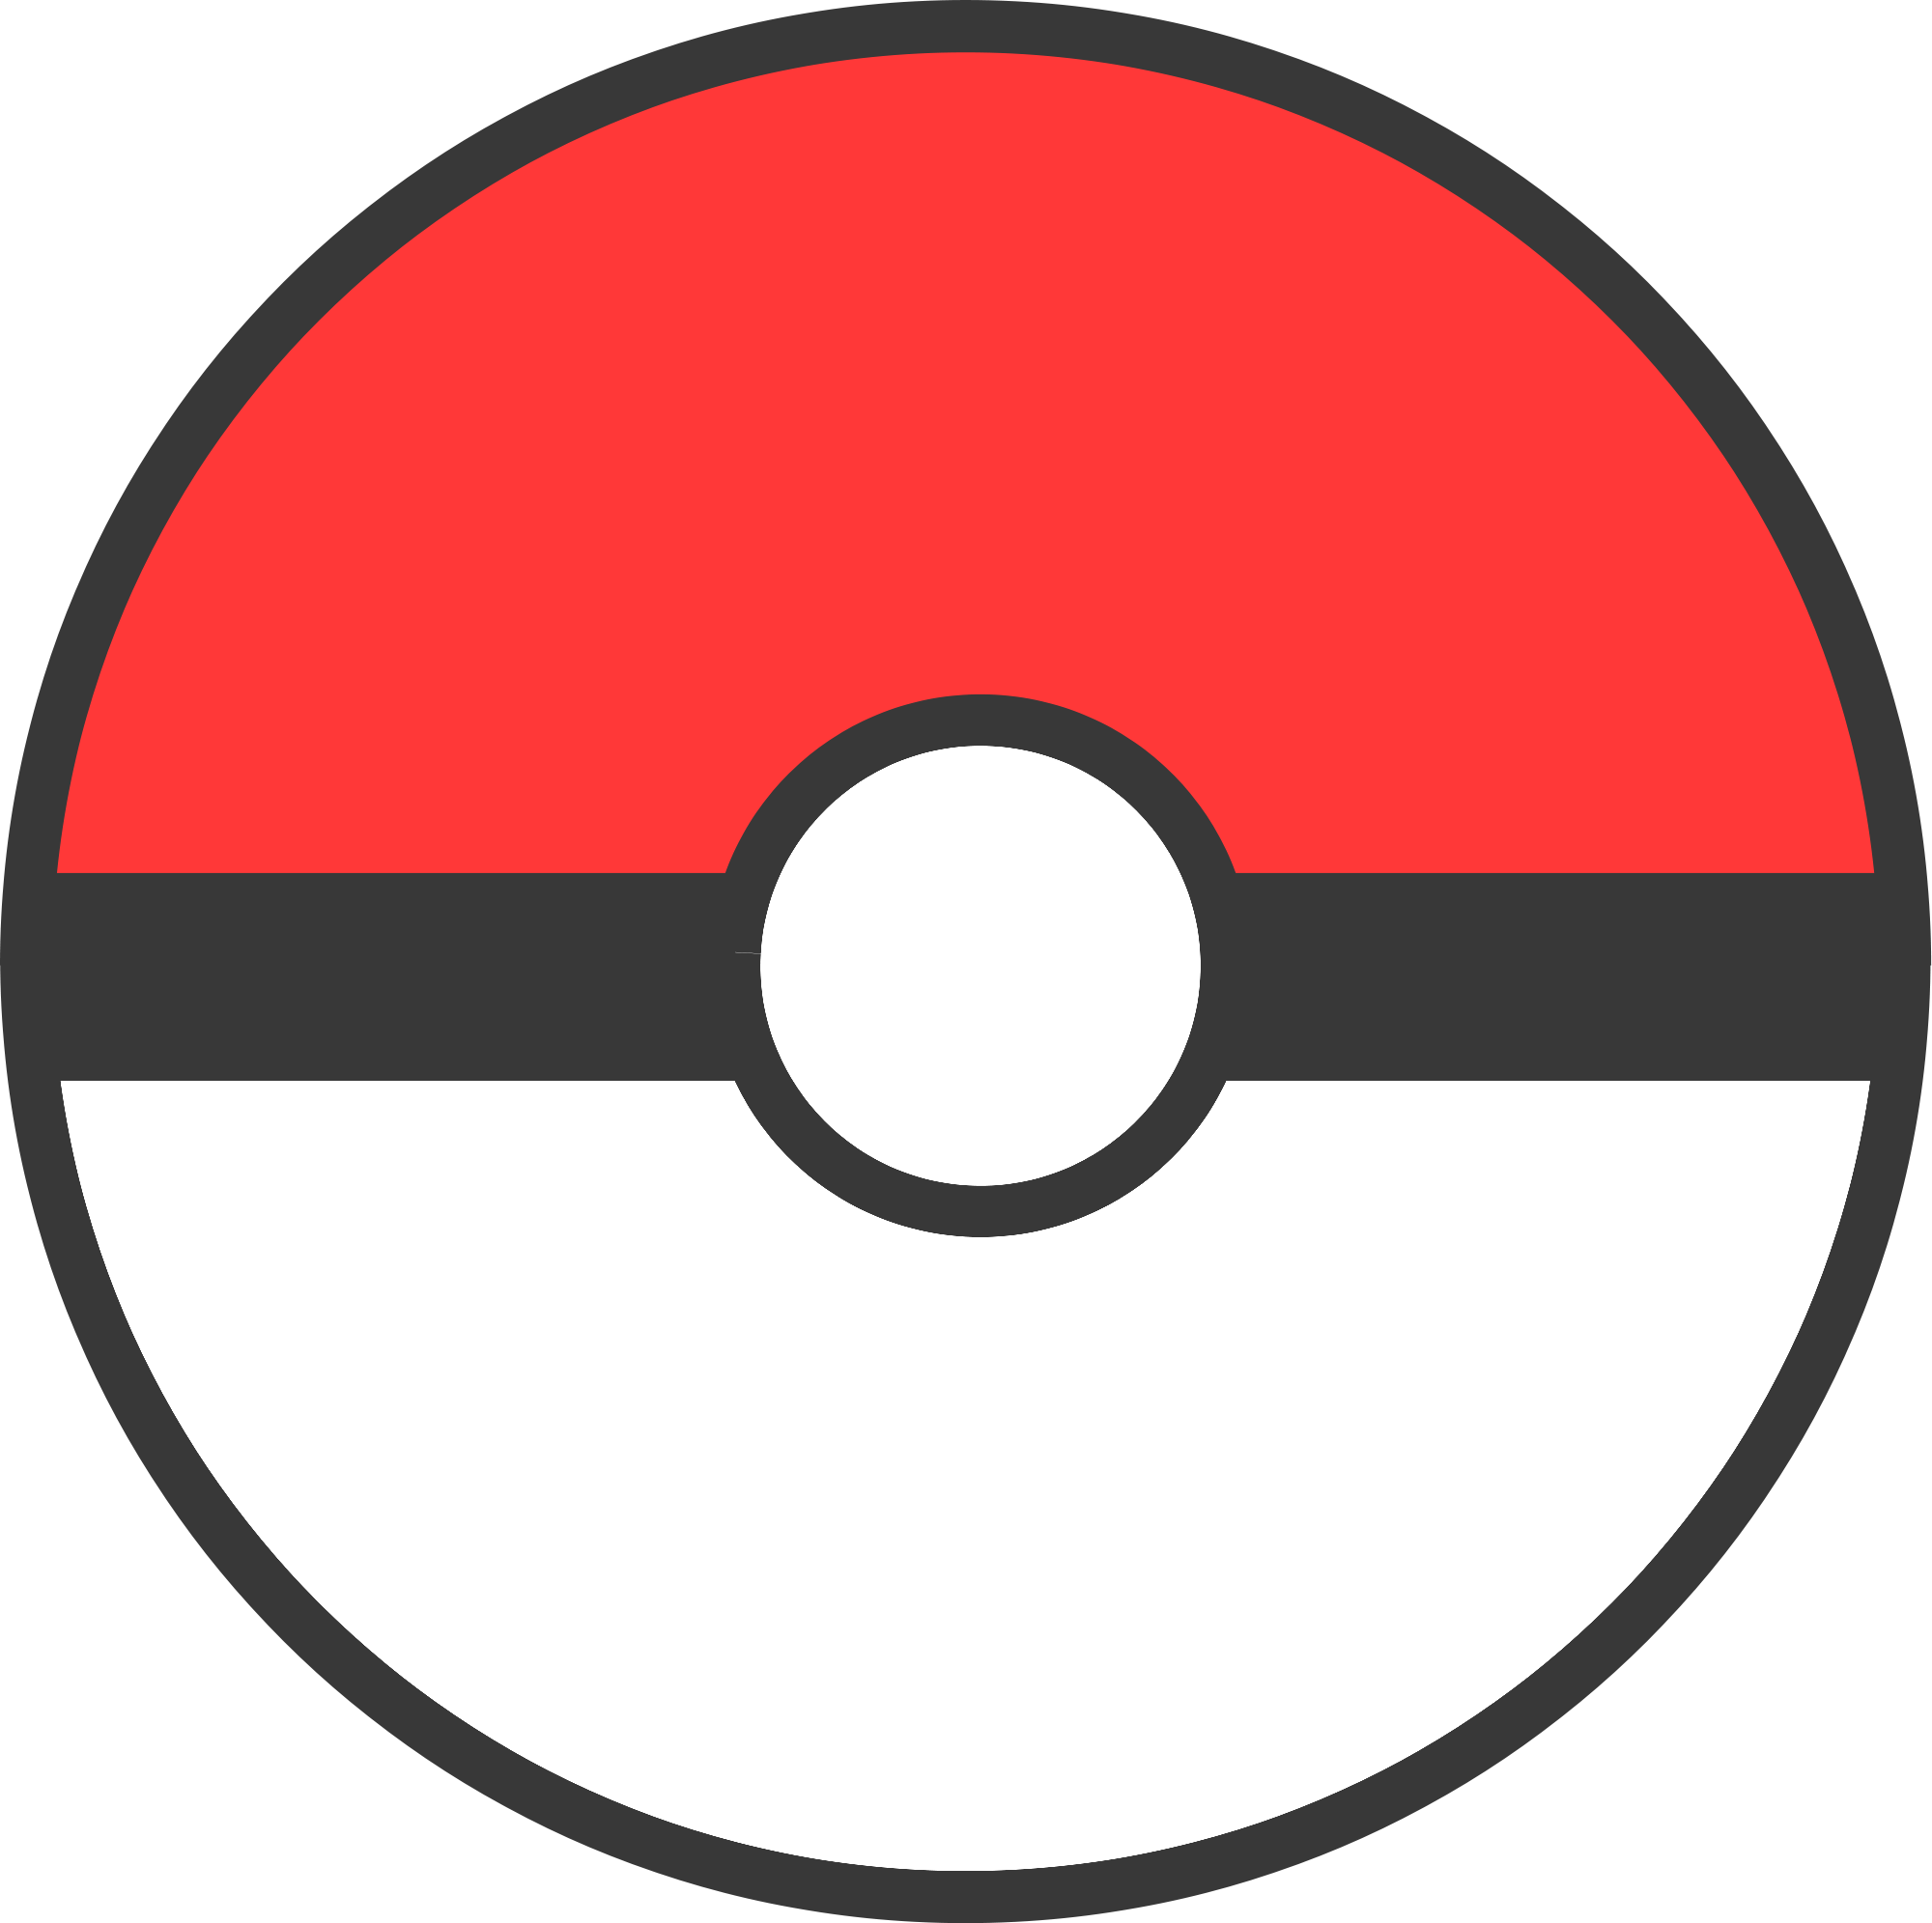 2000x1991 collection of free pokeball poke ball download on ui ex